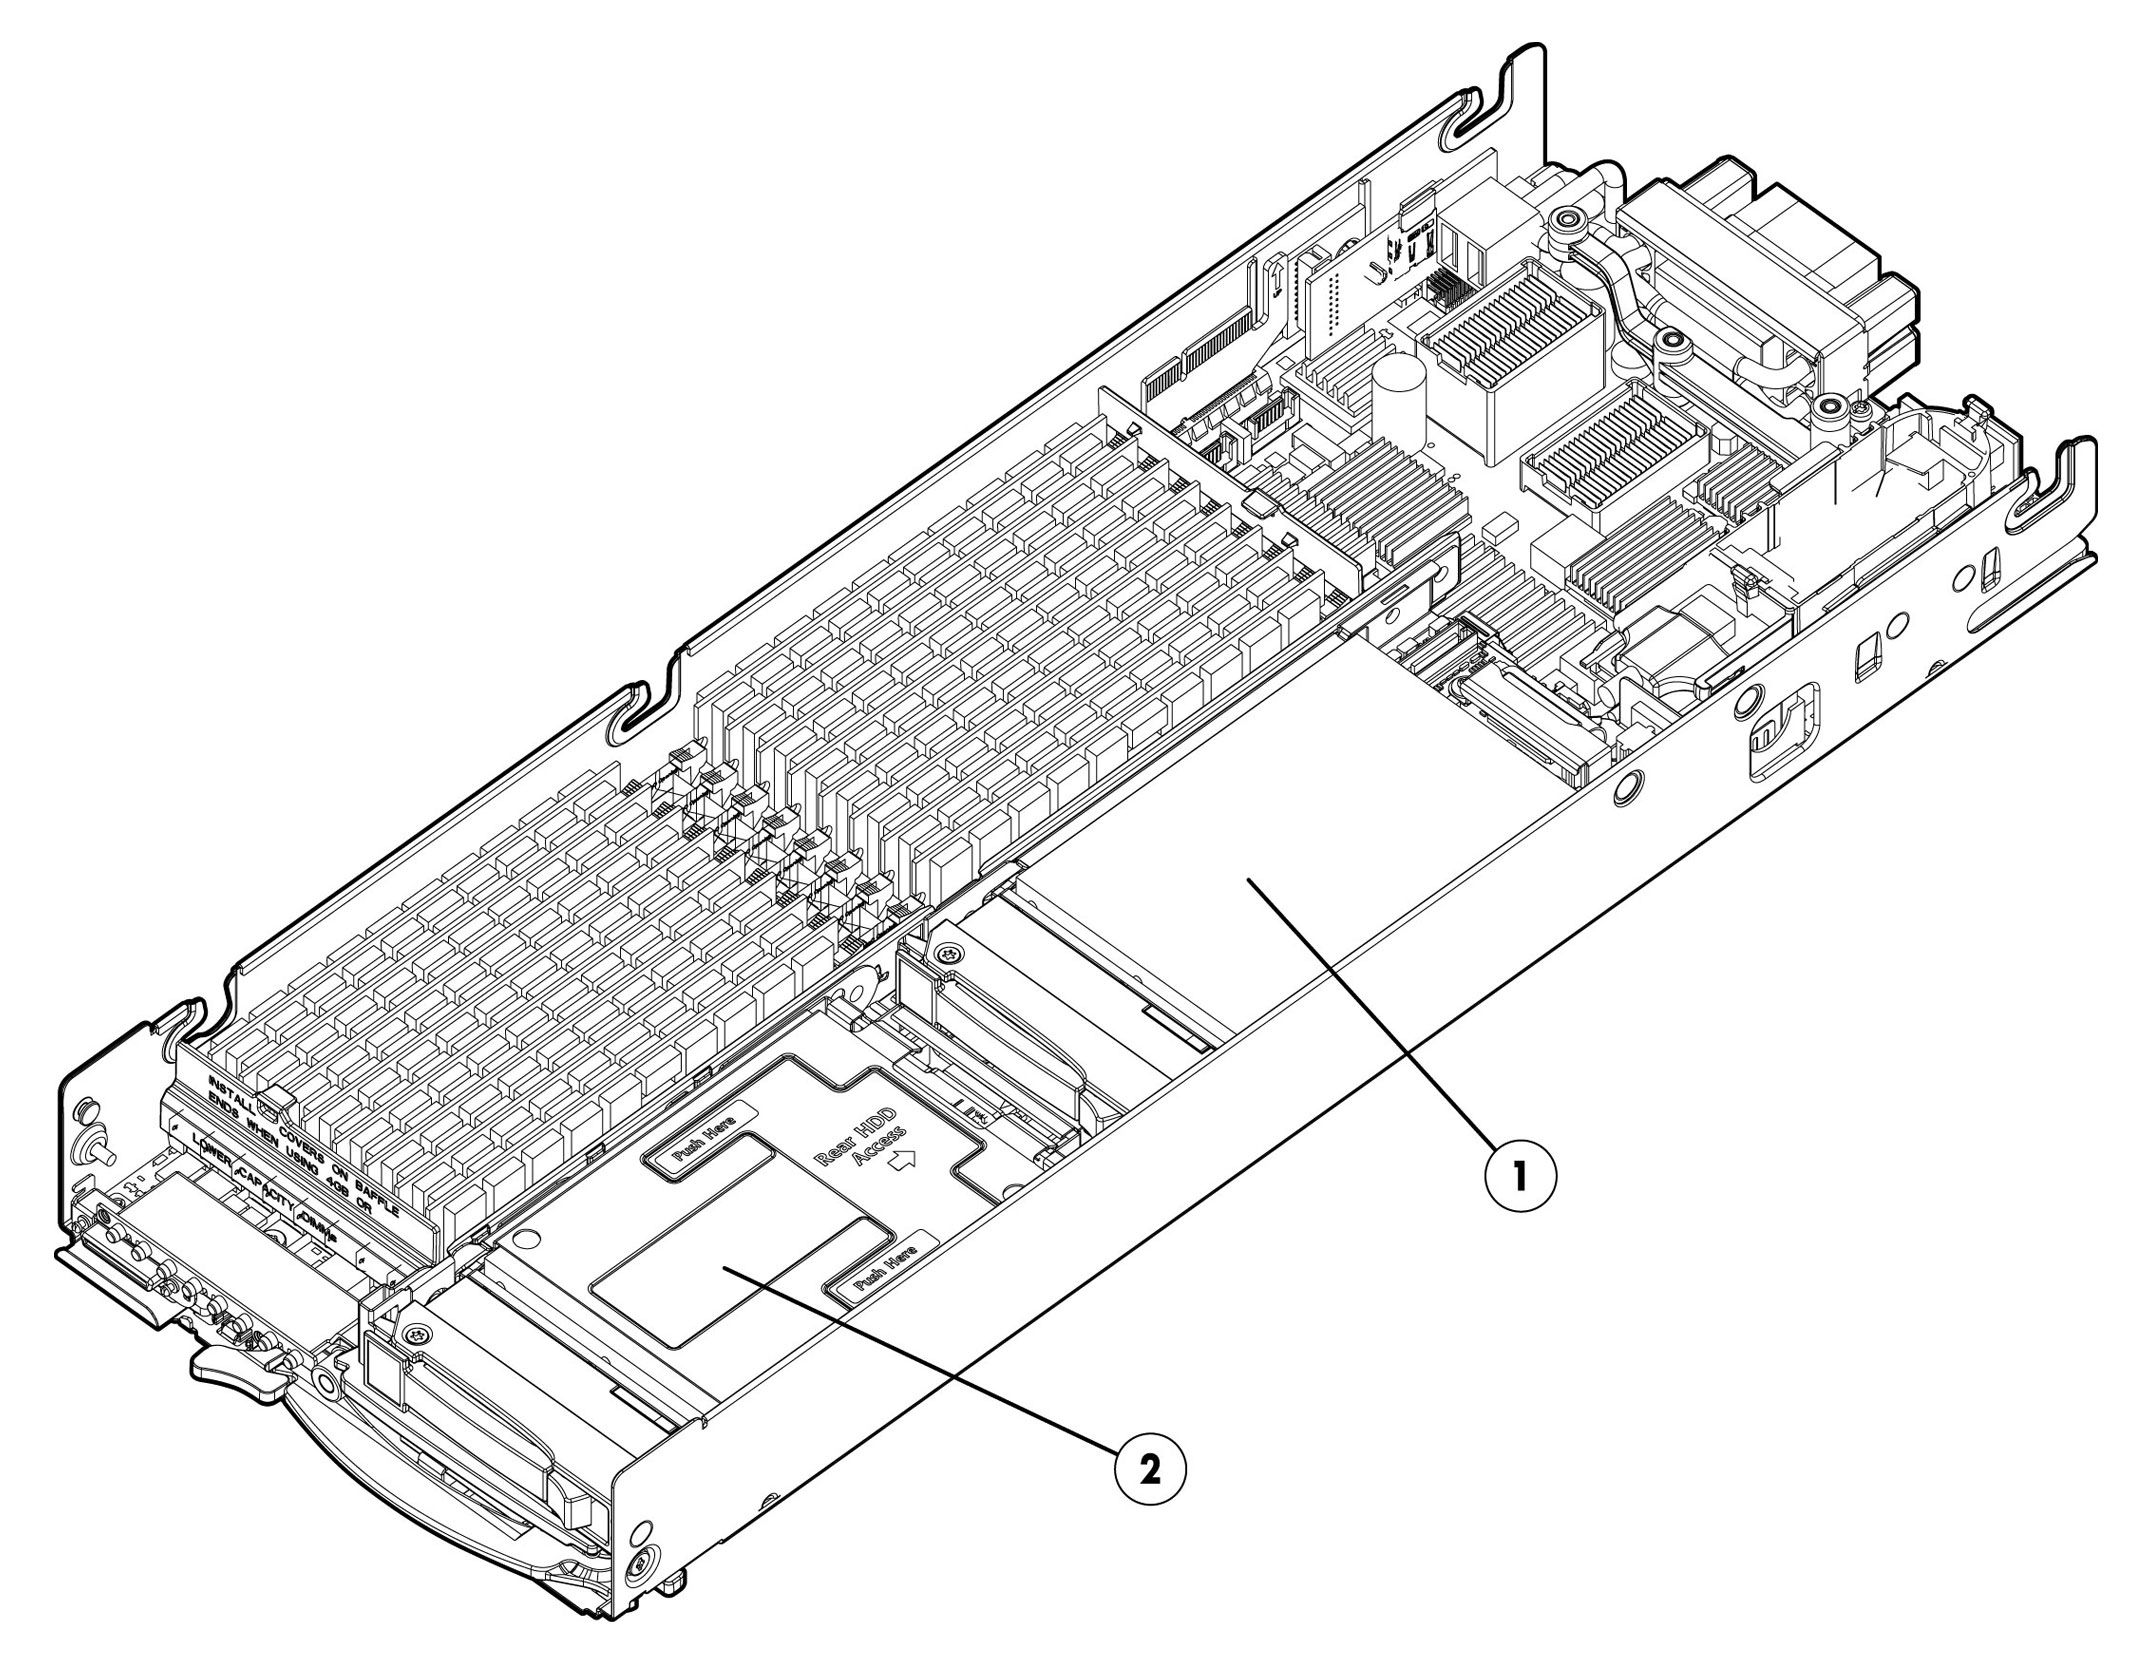 Sata hard drive diagram wiring diagram and fuse box 13654 st sata hard drive diagram